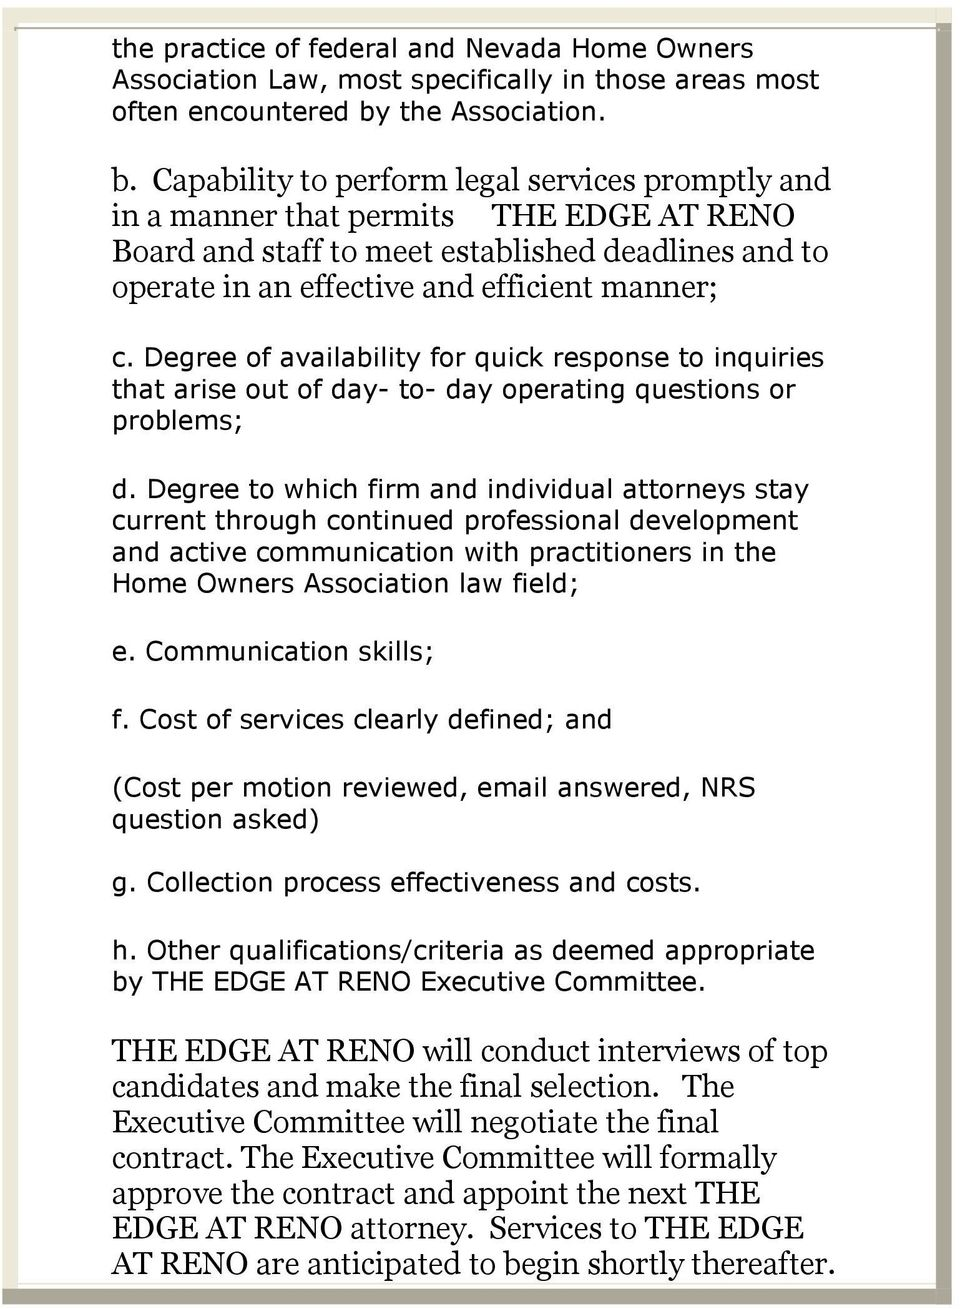 Capability to perform legal services promptly and in a manner that permits THE EDGE AT RENO Board and staff to meet established deadlines and to operate in an effective and efficient manner; c.